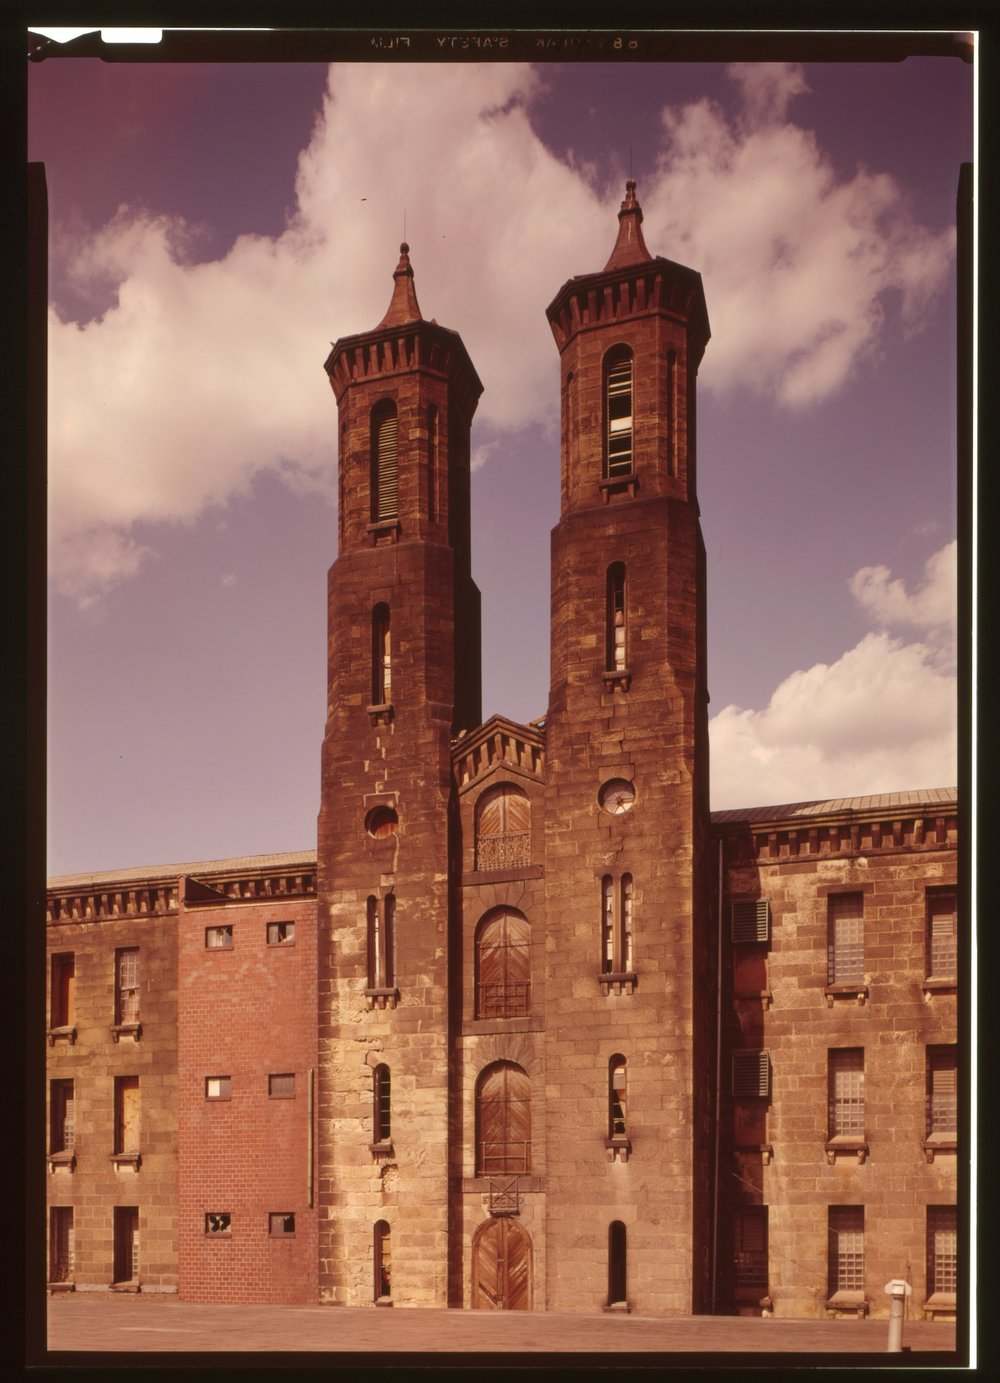 Cannelton Cotton Mill, Front & Fourth Streets, Cannelton, Perry County, Ind. (n.d.) Image via Library of Congress.